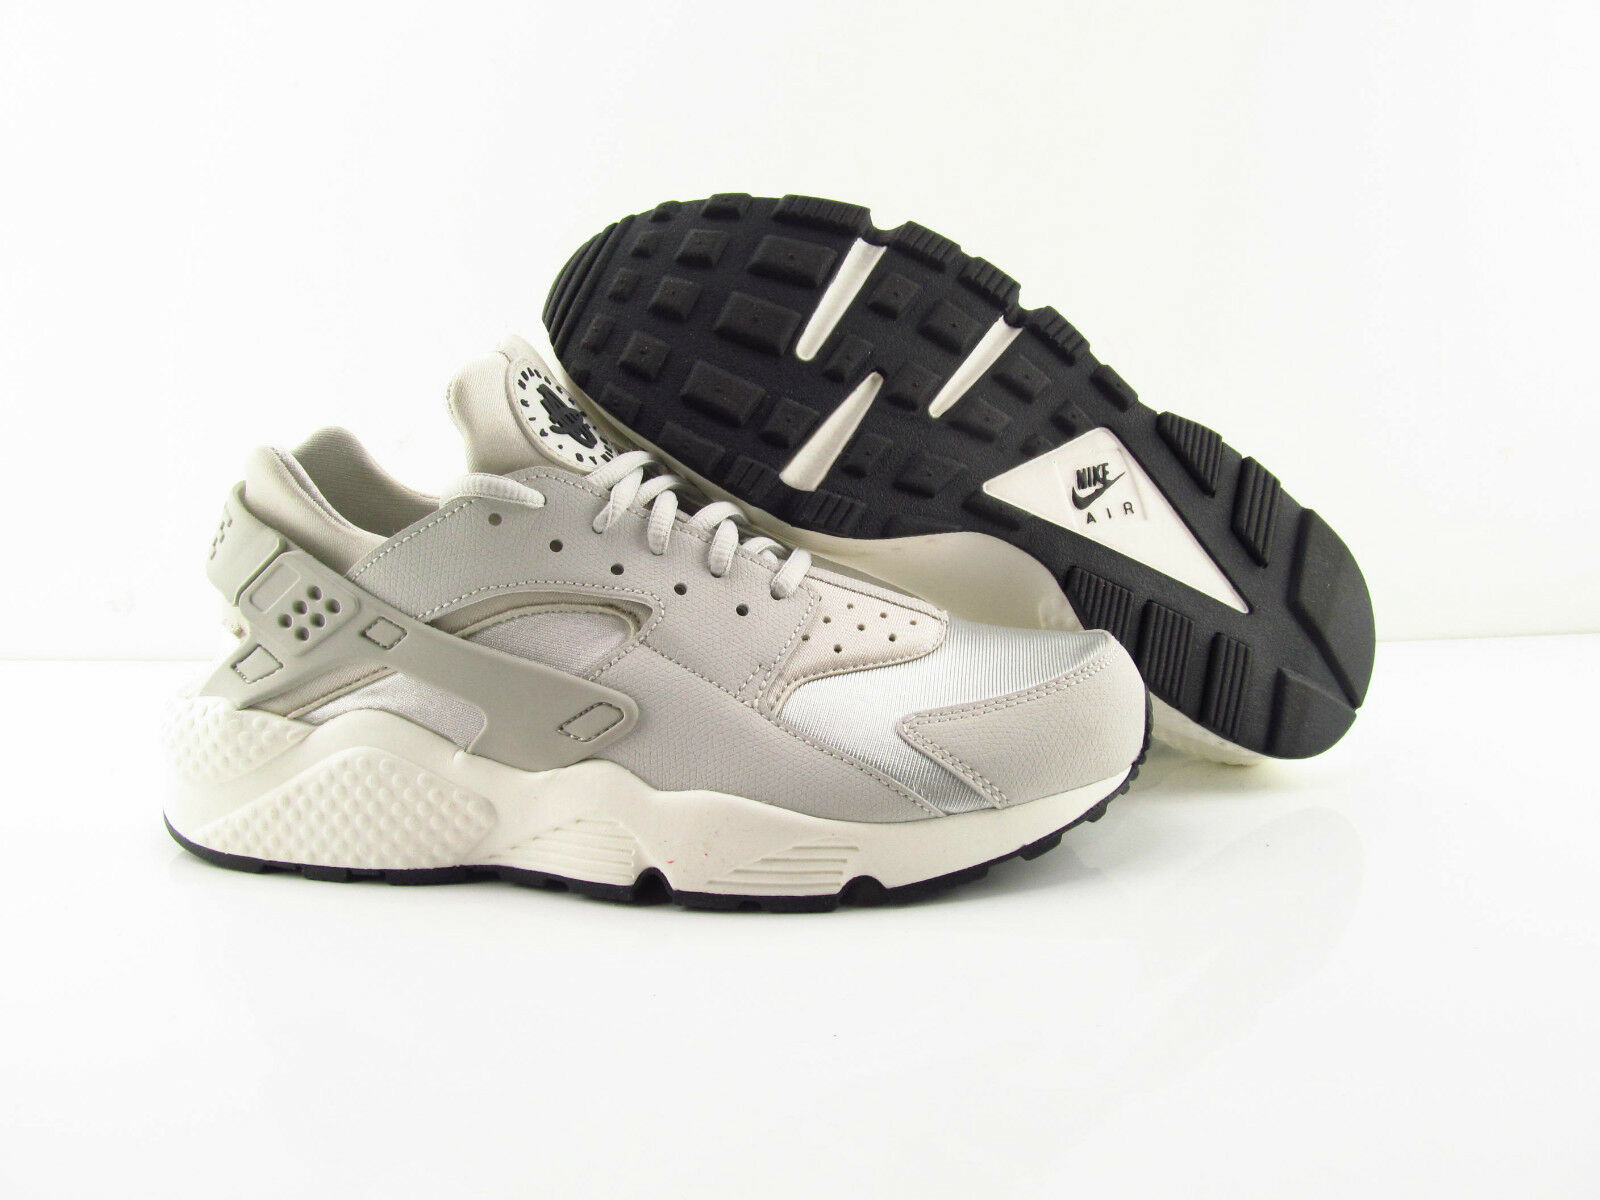 Nike Running Air Huarache Light Bone Running Nike Sneaker Rare  US_10.5 EU 42.5 afbf7b